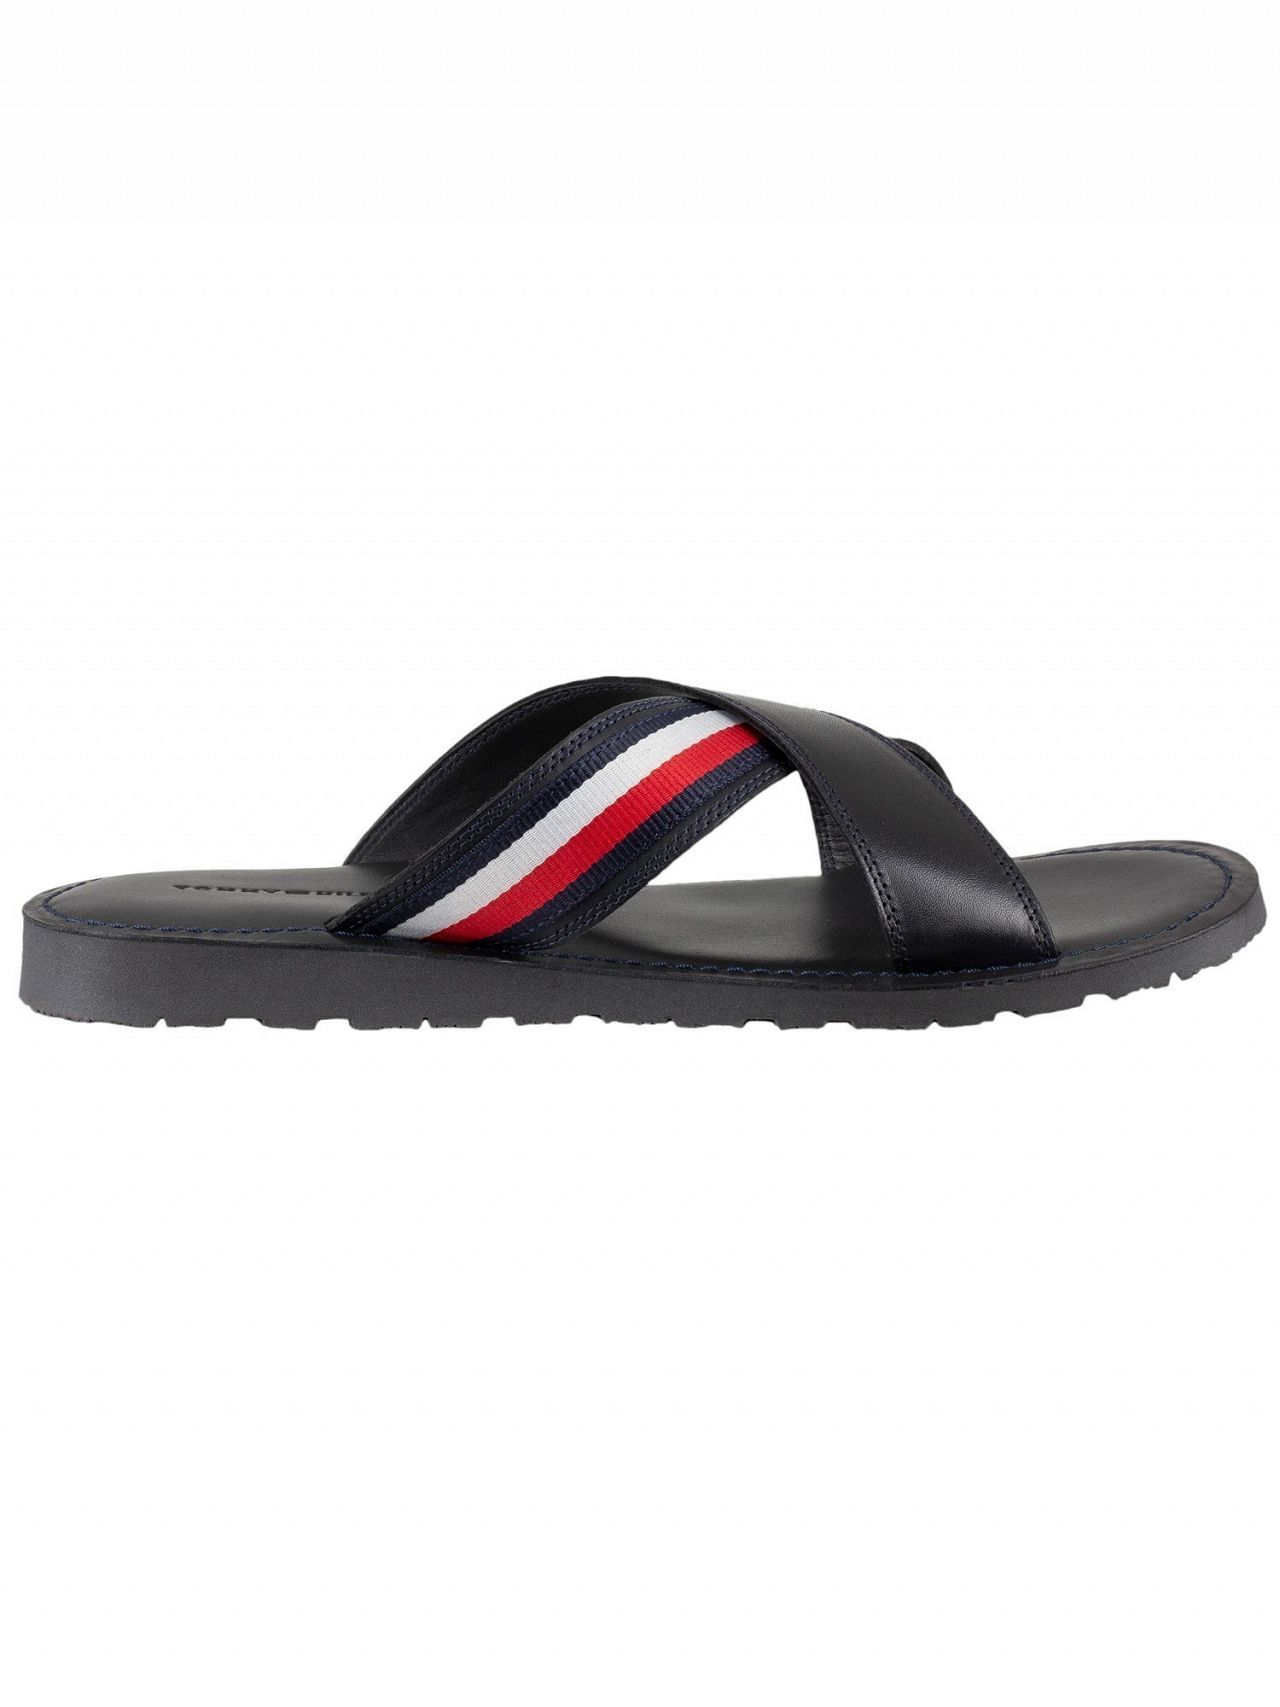 18bae10388730 Tommy Hilfiger Midnight Criss Cross Leather Sandals | Standout